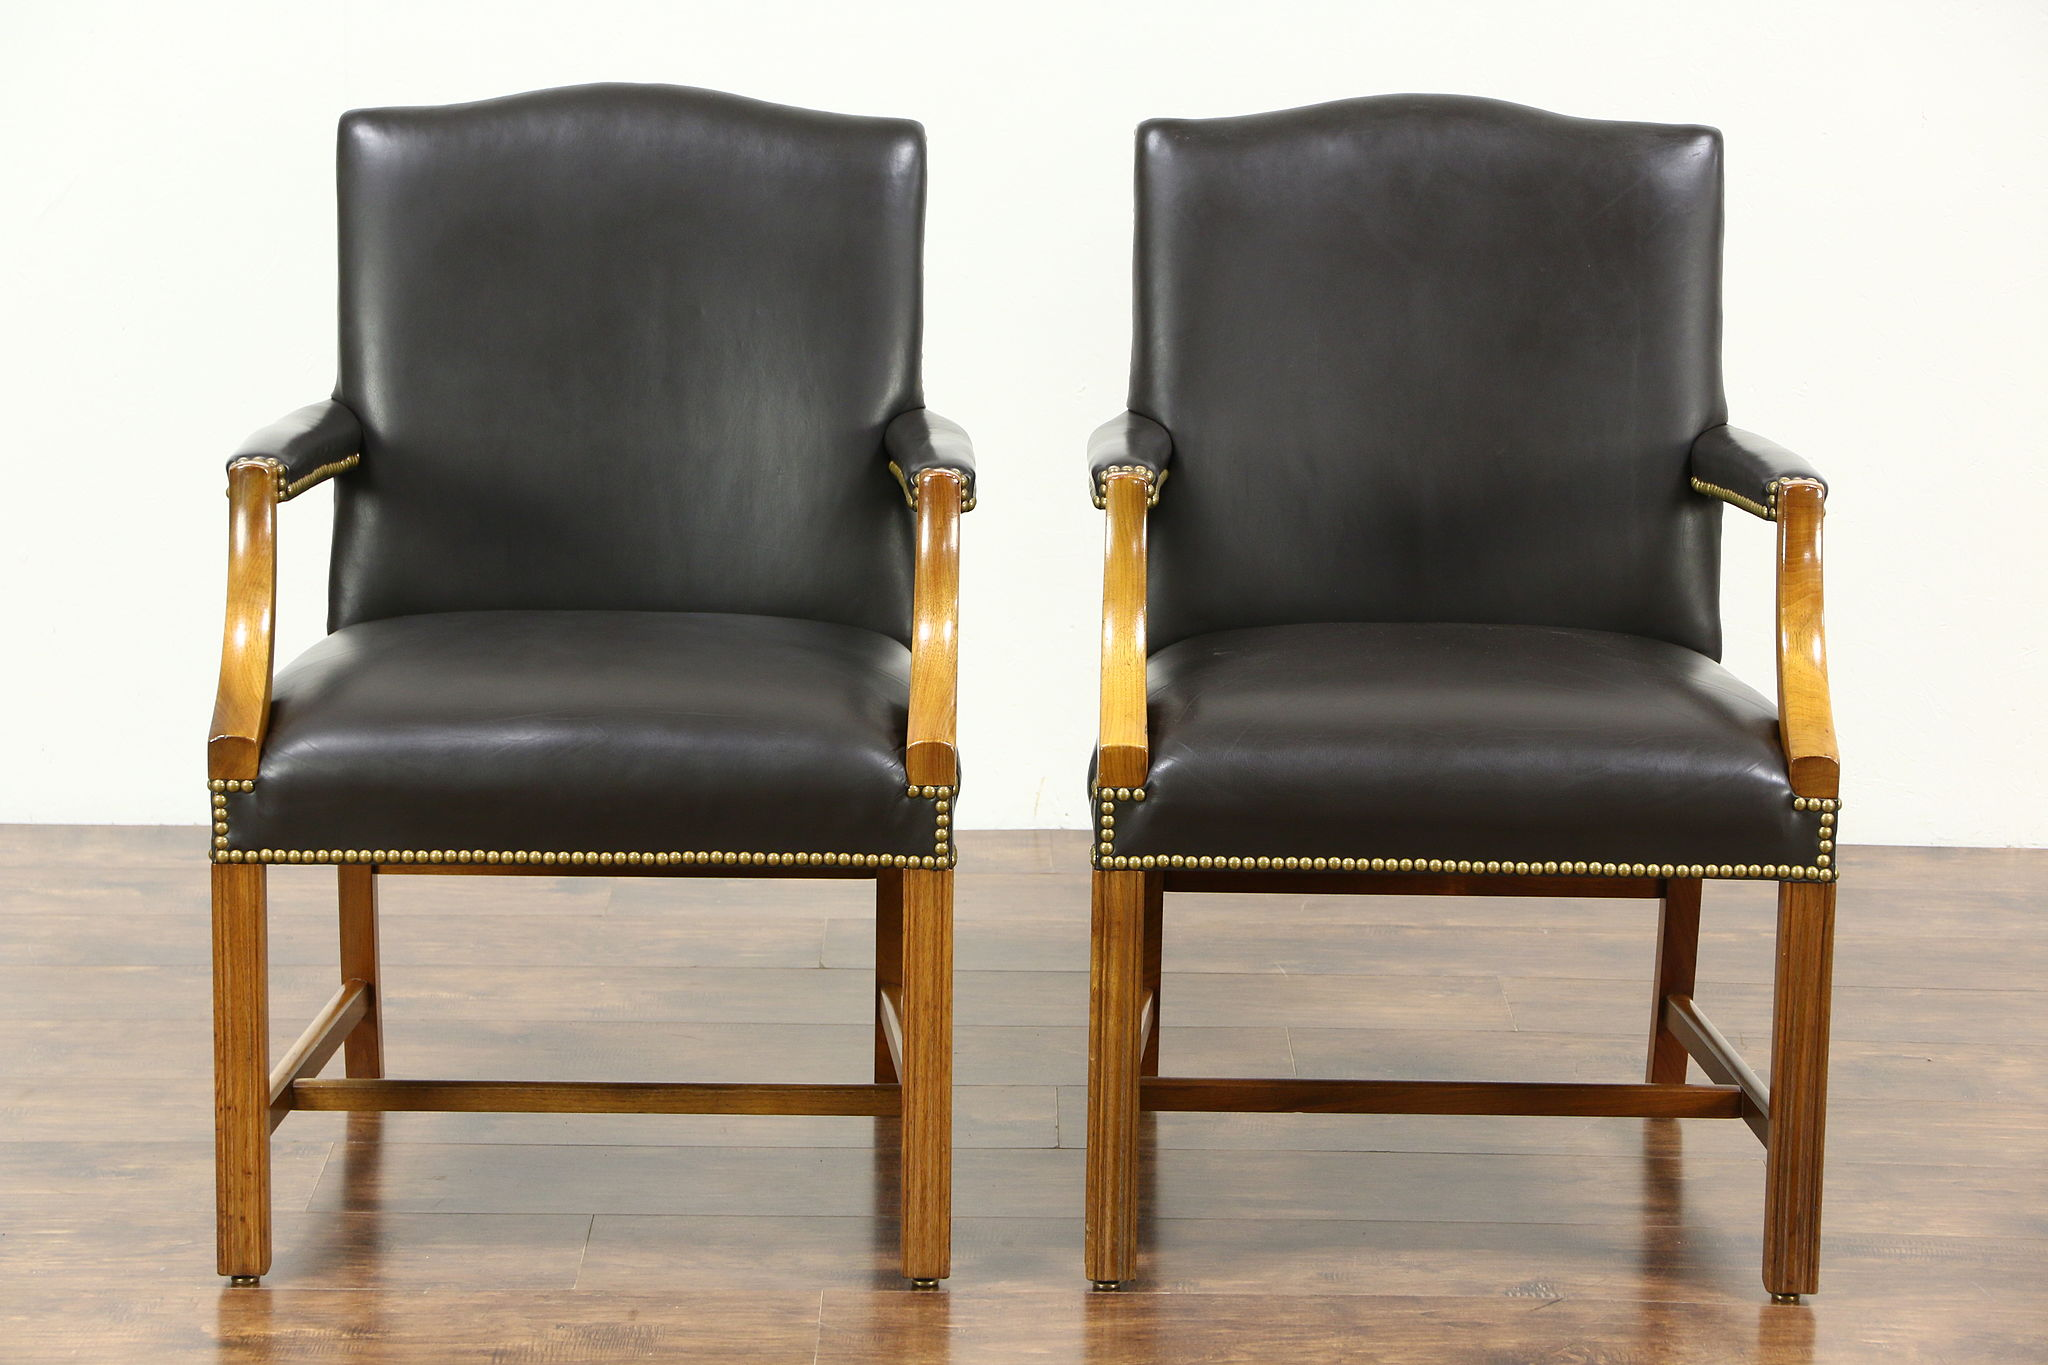 Sold Pair Of Vintage Leather Office